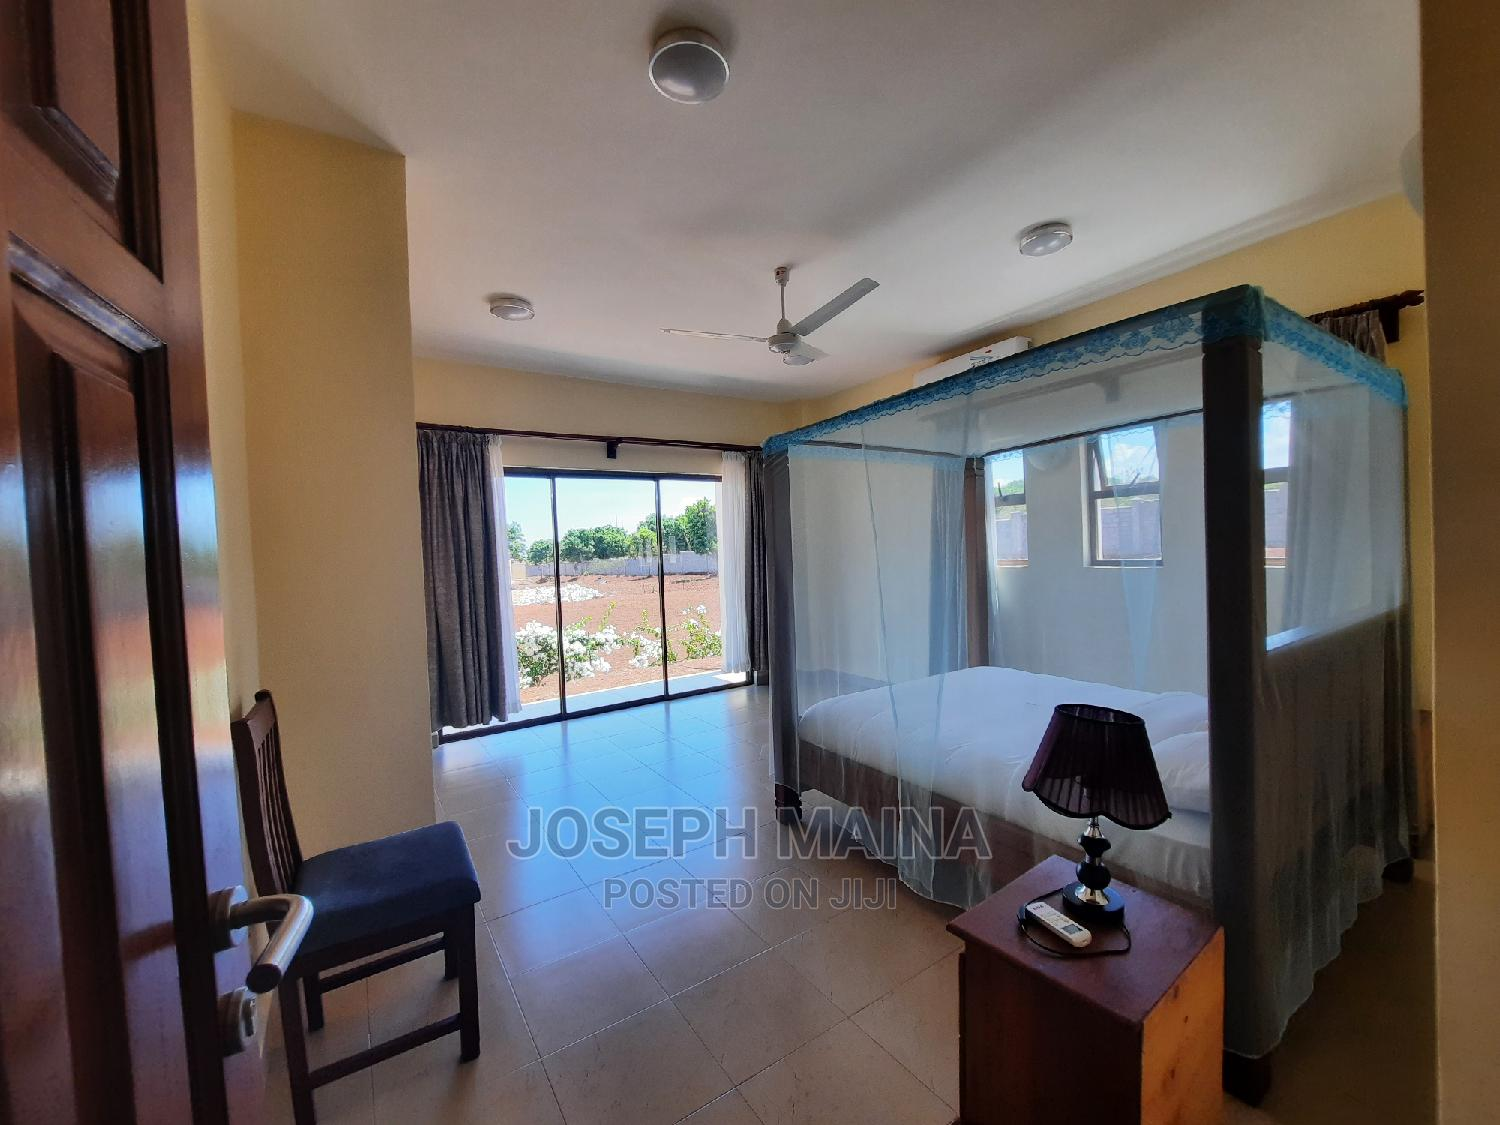 3 Bedrooms Villa 4 Sale in Vipingo With Far Great Sea View | Houses & Apartments For Sale for sale in Sokoni, Kilifi North, Kenya